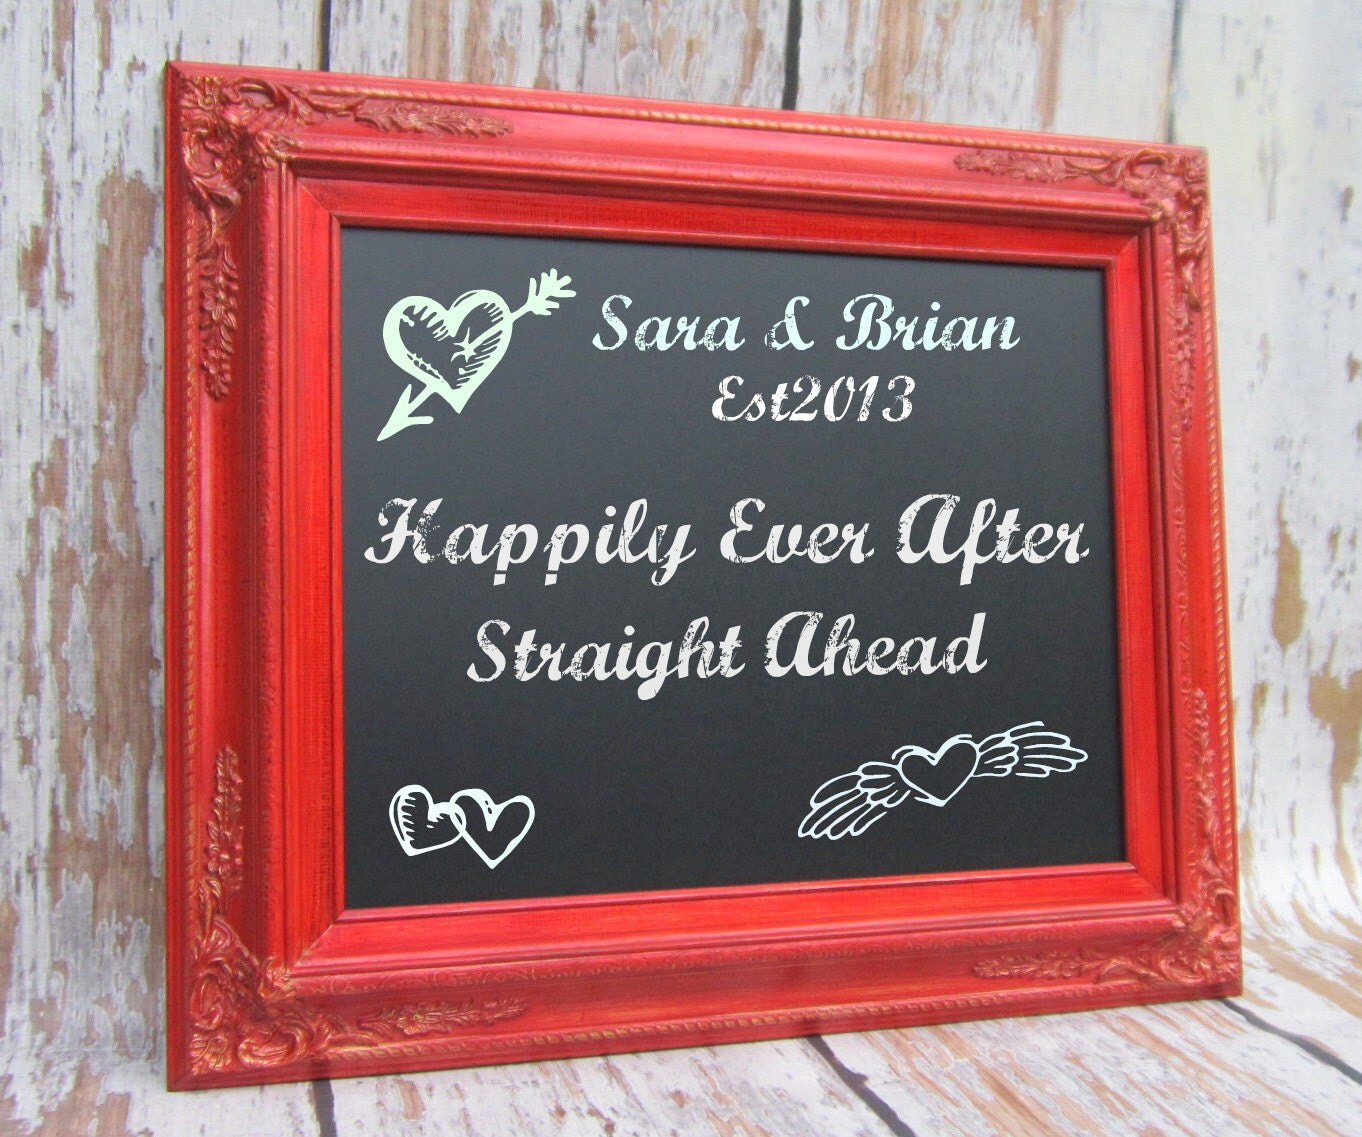 KITCHEN CHALKBOARD For Sale ExTRA LaRGE 53x27 By